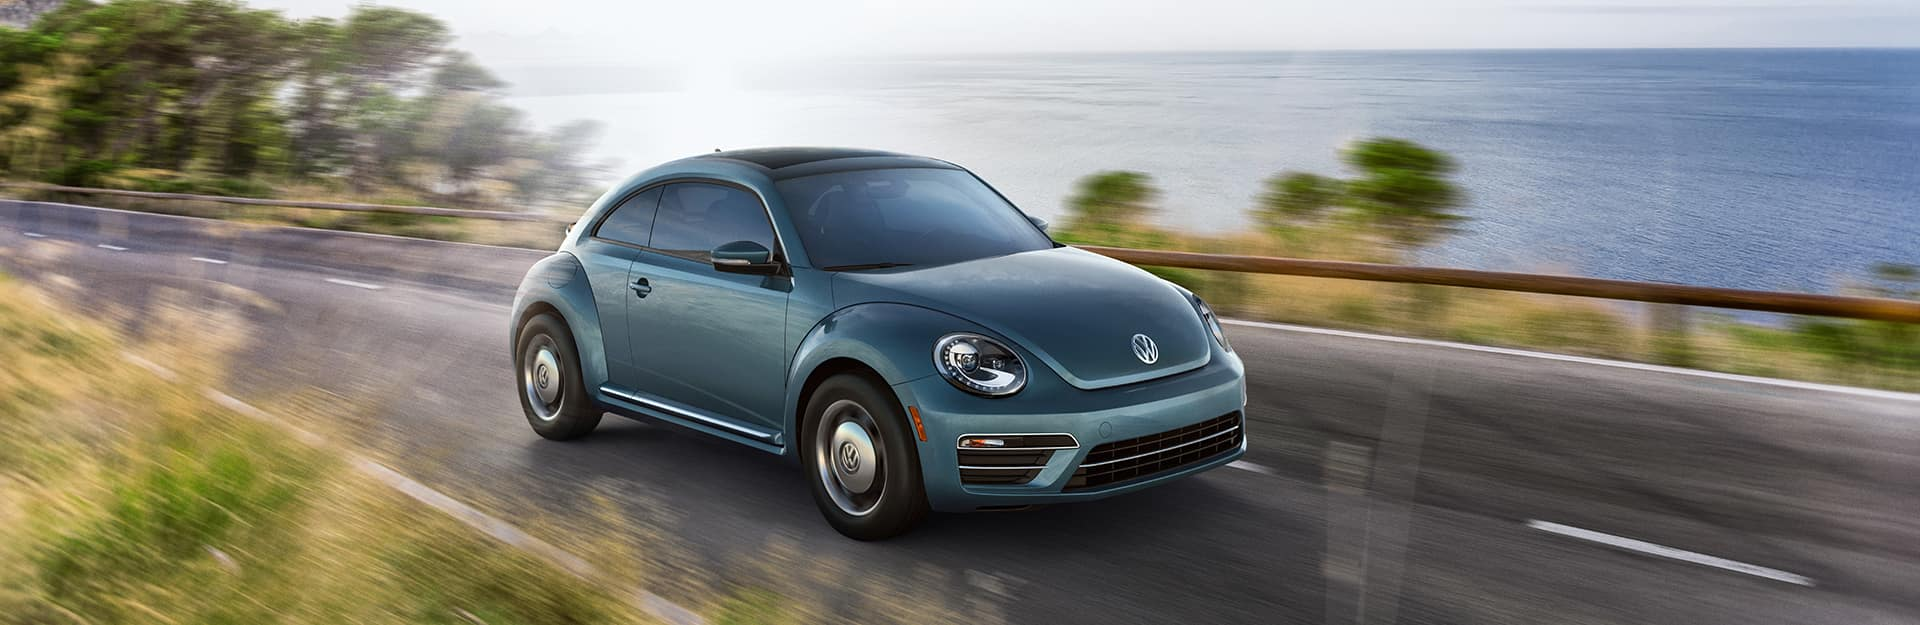 Timmons VW Lease Pull Ahead Program